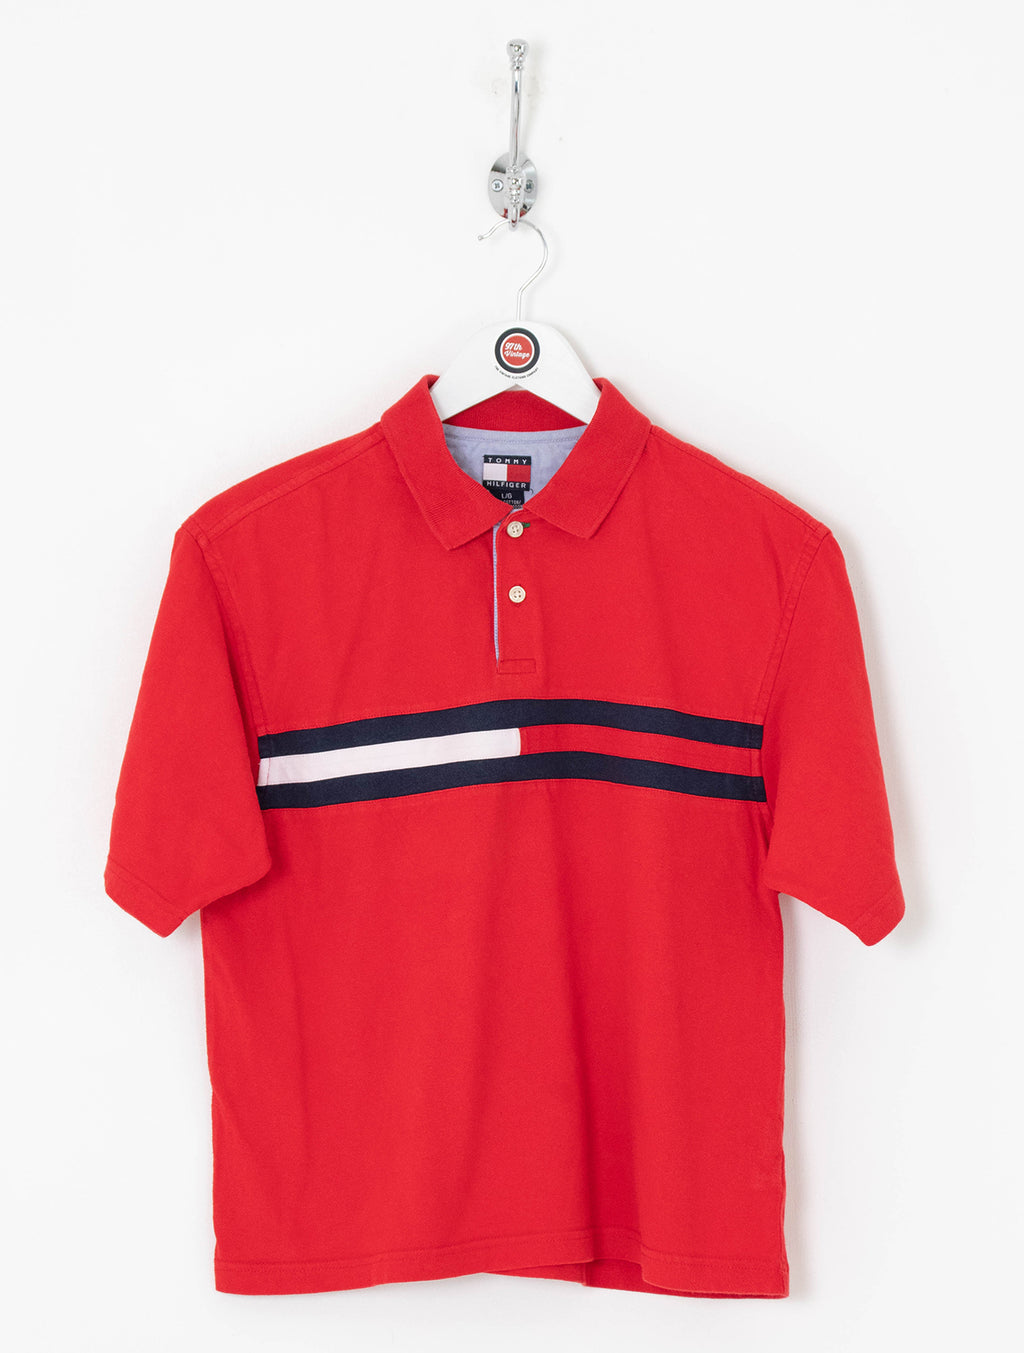 Women's Tommy Hilfiger Polo Shirt (L)